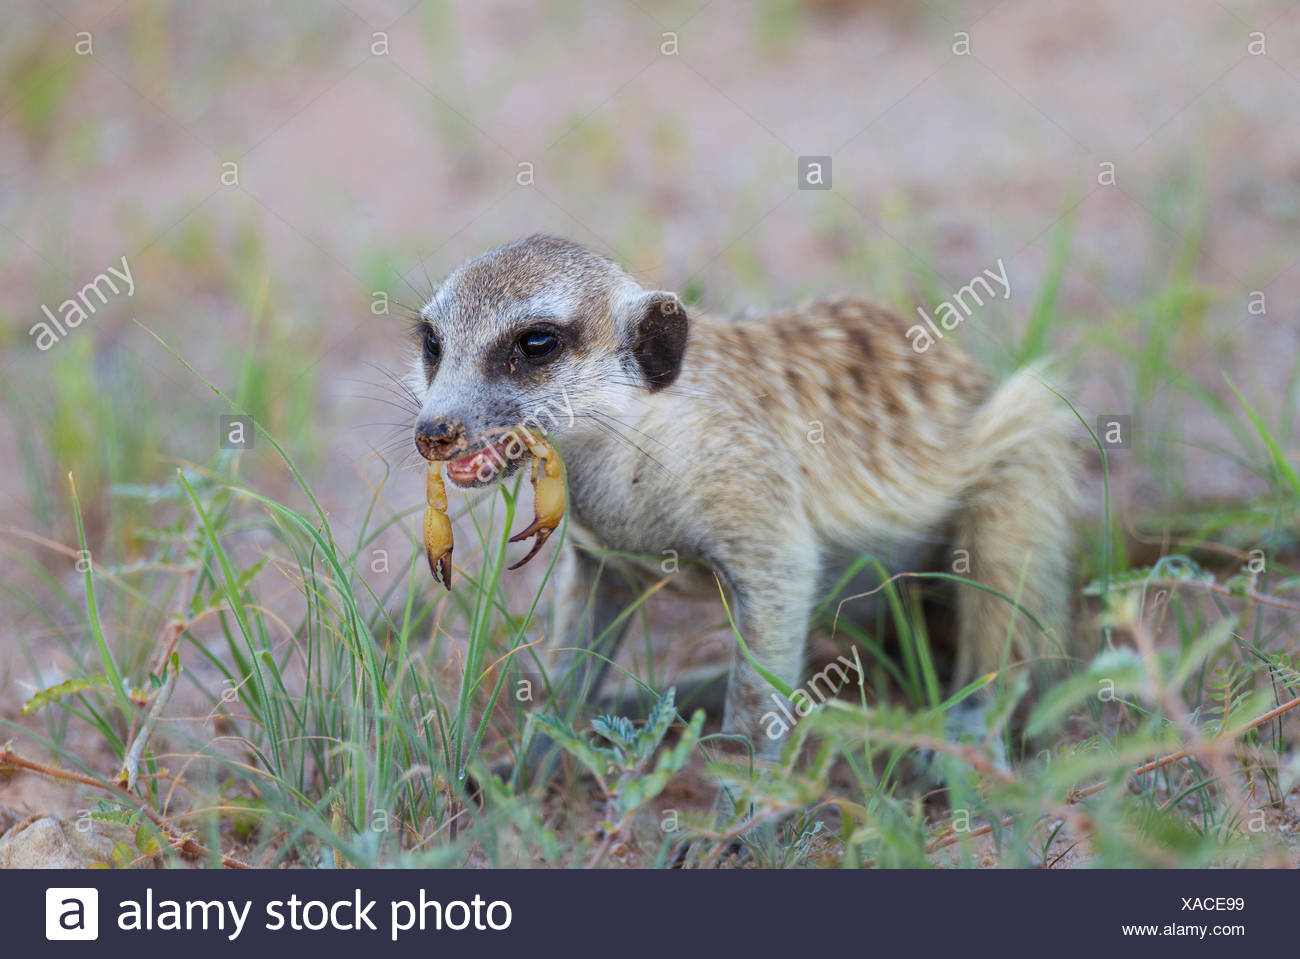 Suricate or meerkat (Suricata suricatta), feeding on a scorpion (Scorpiones), rainy season with green grass, Kalahari Desert - Stock Image